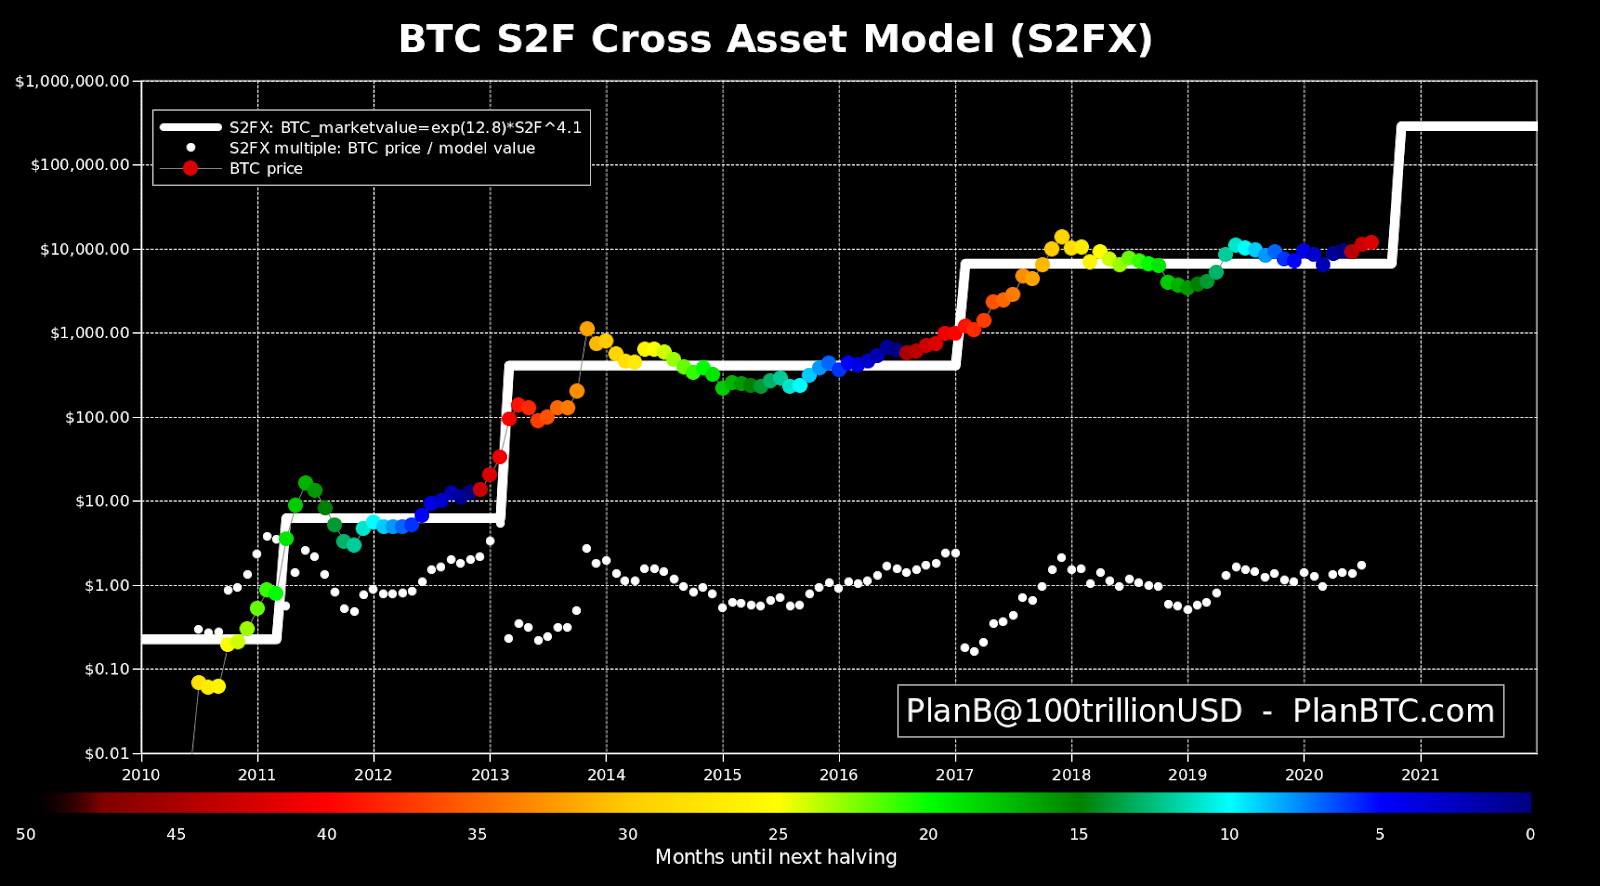 Bitcoin S2F Cross-Asset model chart